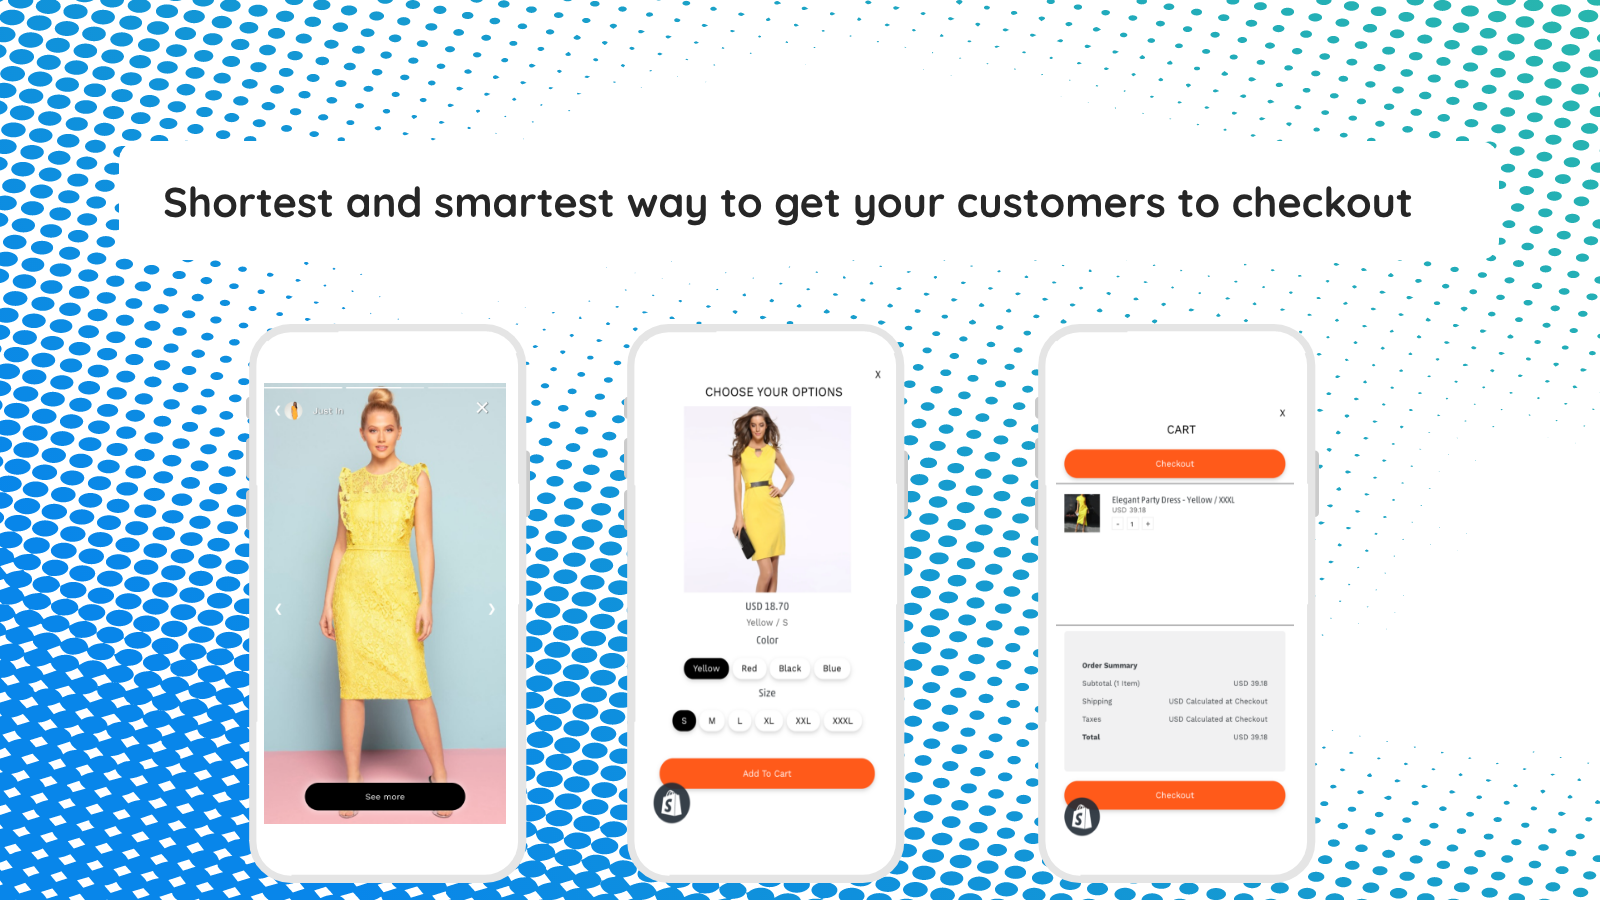 Shortest and smartest way to get your customers to checkout